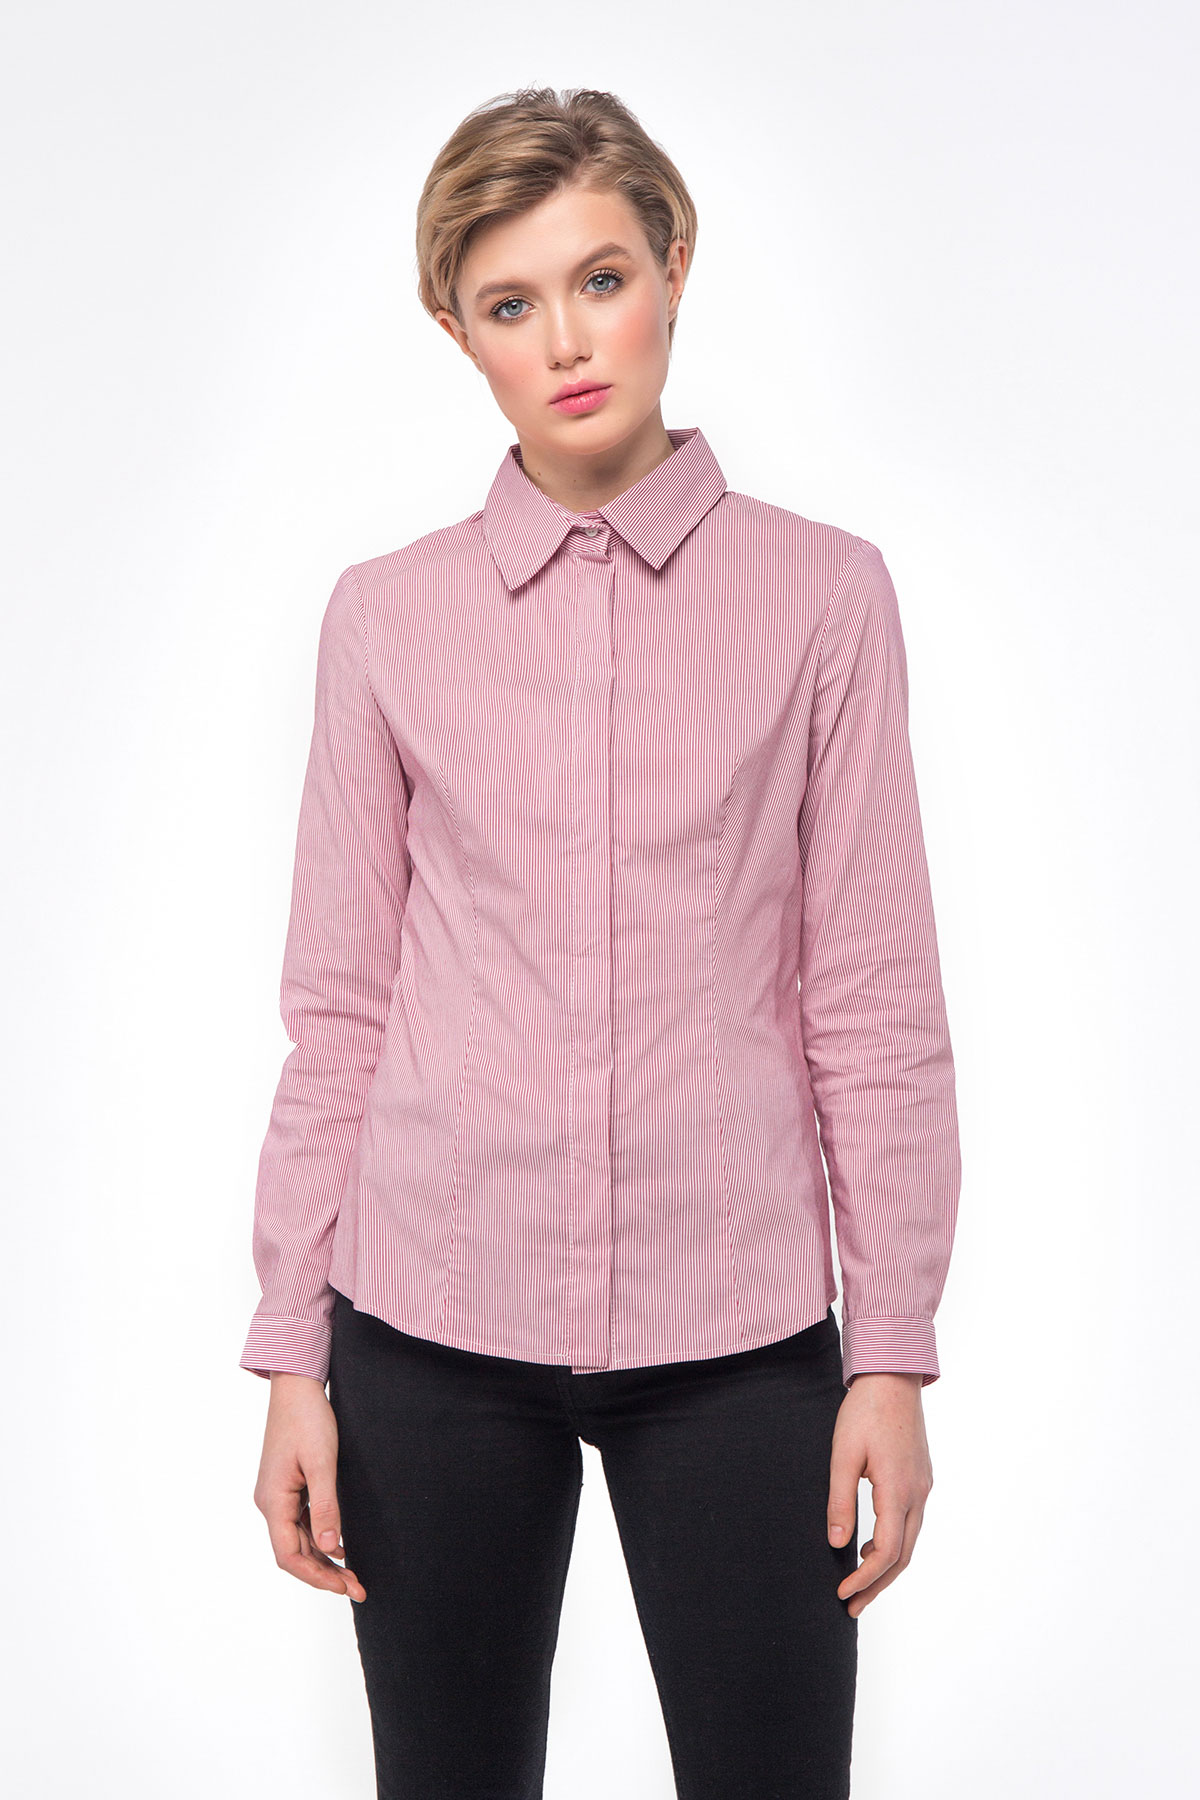 def8978c Pink striped T-shirt photo 5 - MustHave online store